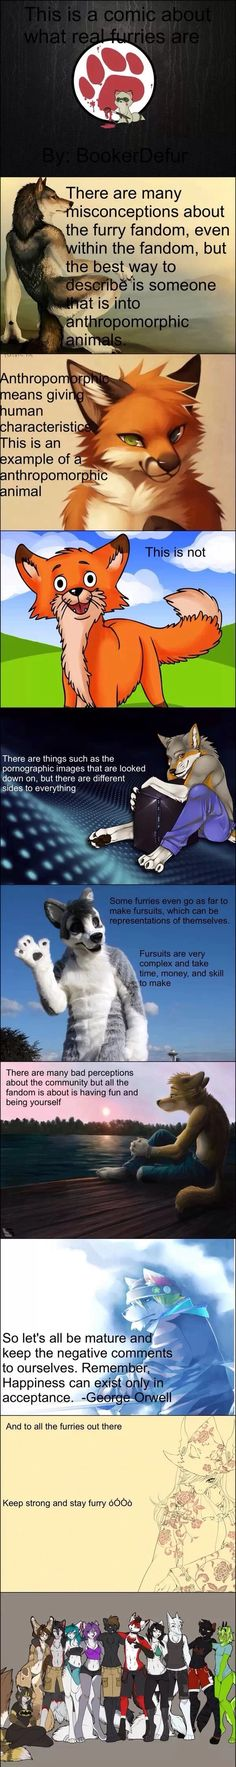 I am not a furry, but we need to all keep this in mind. Actually learn what the fandom is before you judge it.